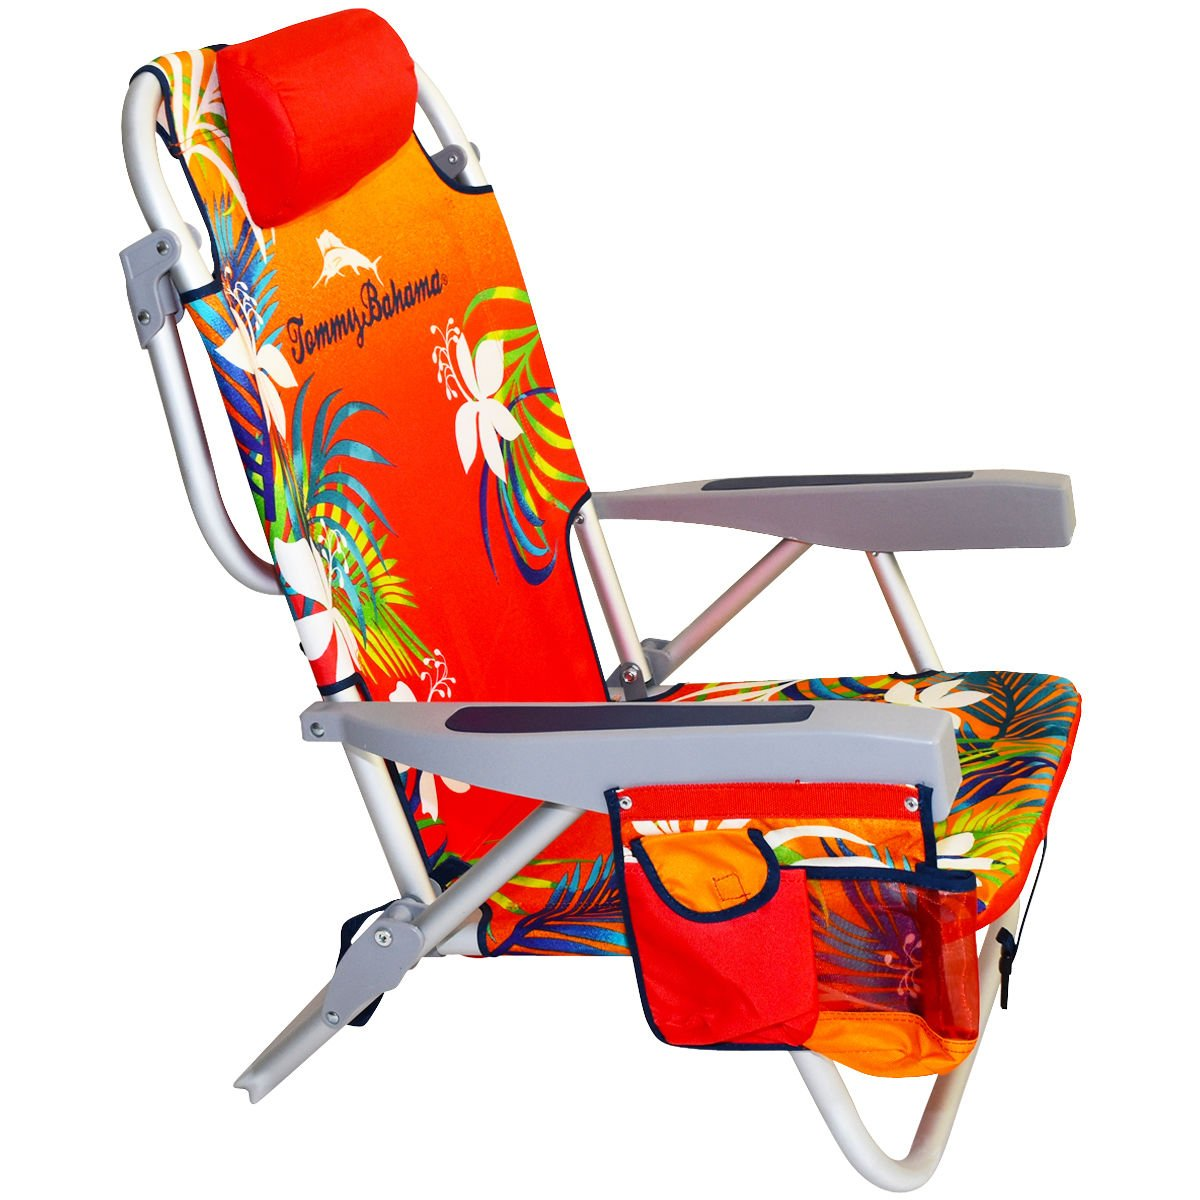 2 Tommy Bahama 2016 Backpack Cooler Chair with Storage Pouch and Towel Bar (Orange/Red & Orange/Red) by Tommy Bahama (Image #3)